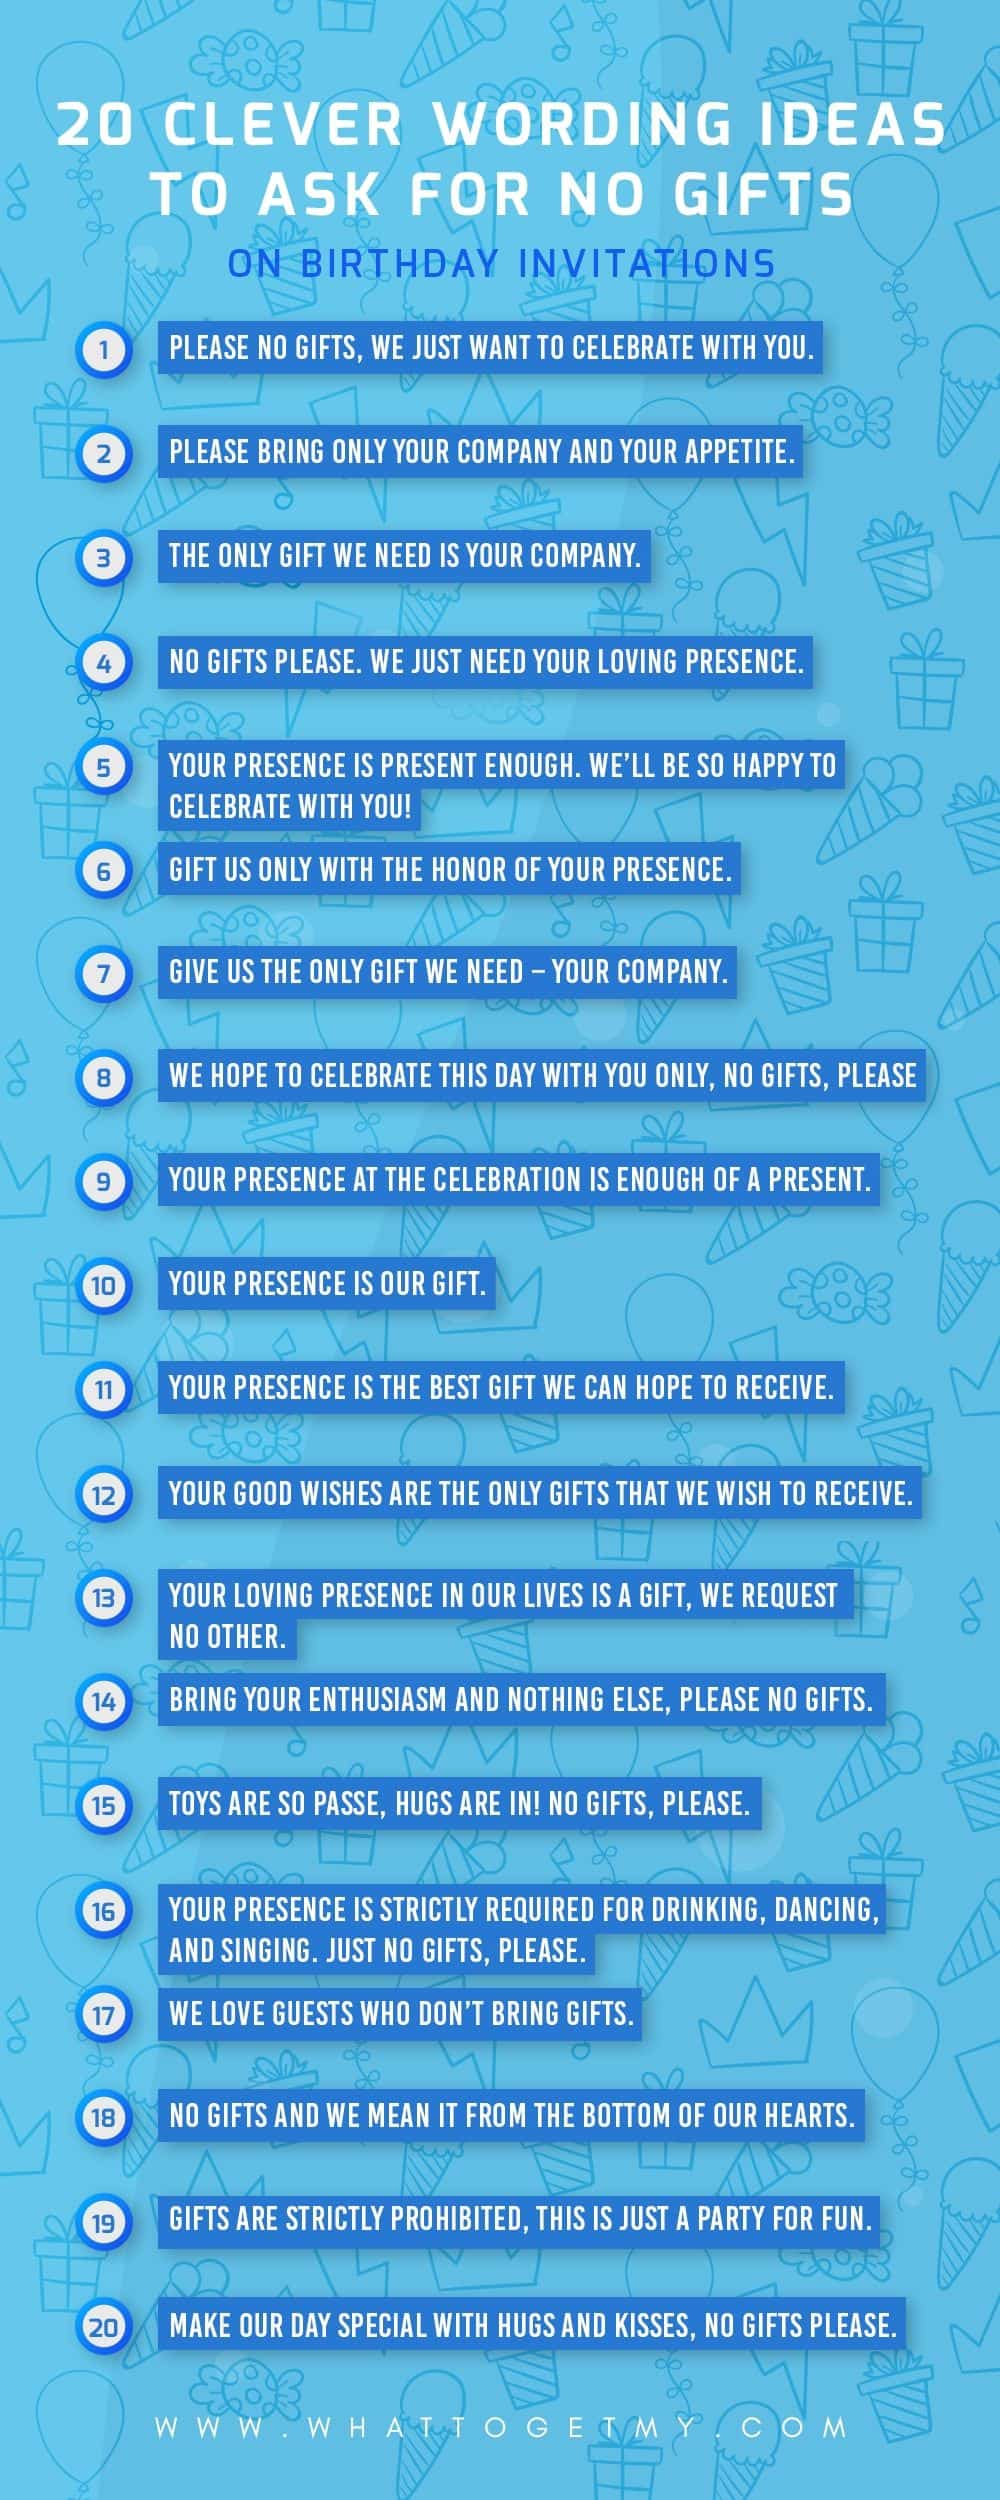 Infographic Clever Wording Ideas to Ask for No Gifts on Birthday Invitations